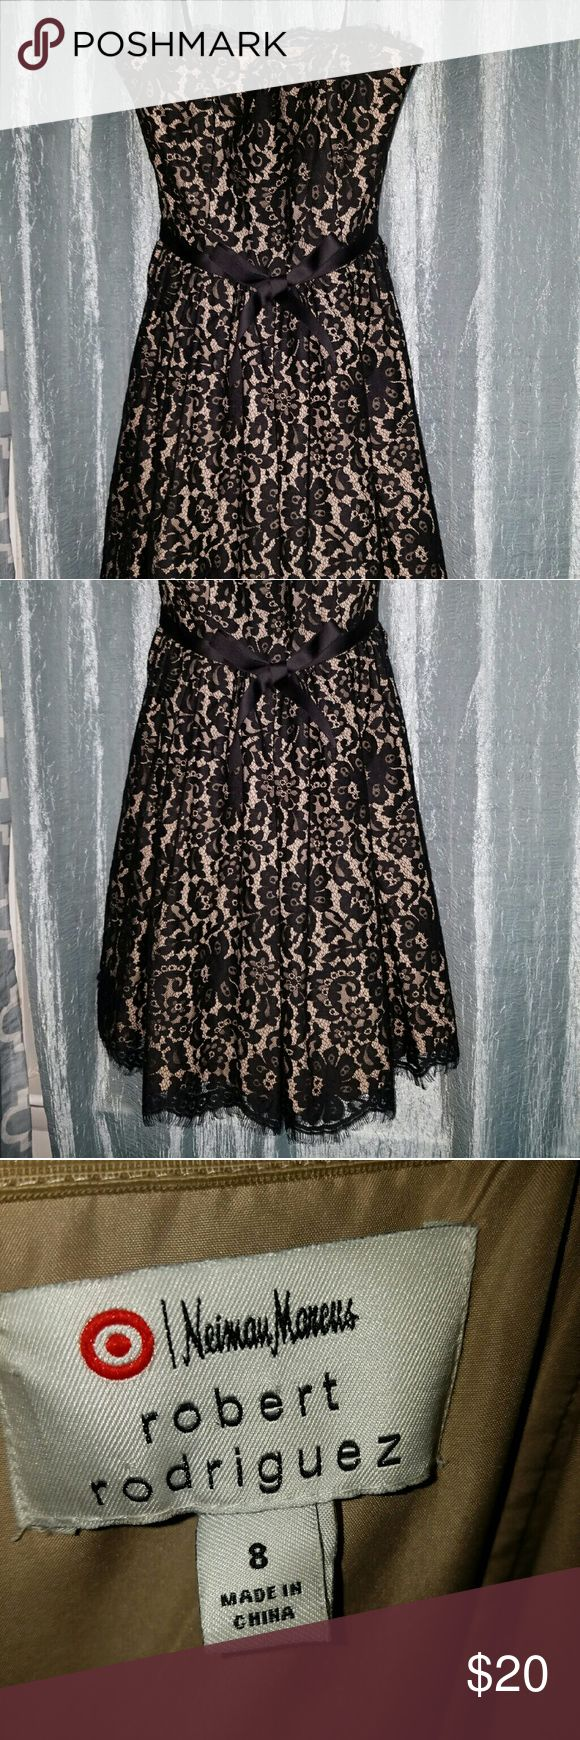 Neiman Marcus black lace dress! Black lace dress with black tie around waist.  Dress is strapless but does have bra straps on each side to help hold up the dress...zippered located in the back of the dress.  Excellent condition! Neiman Marcus Dresses